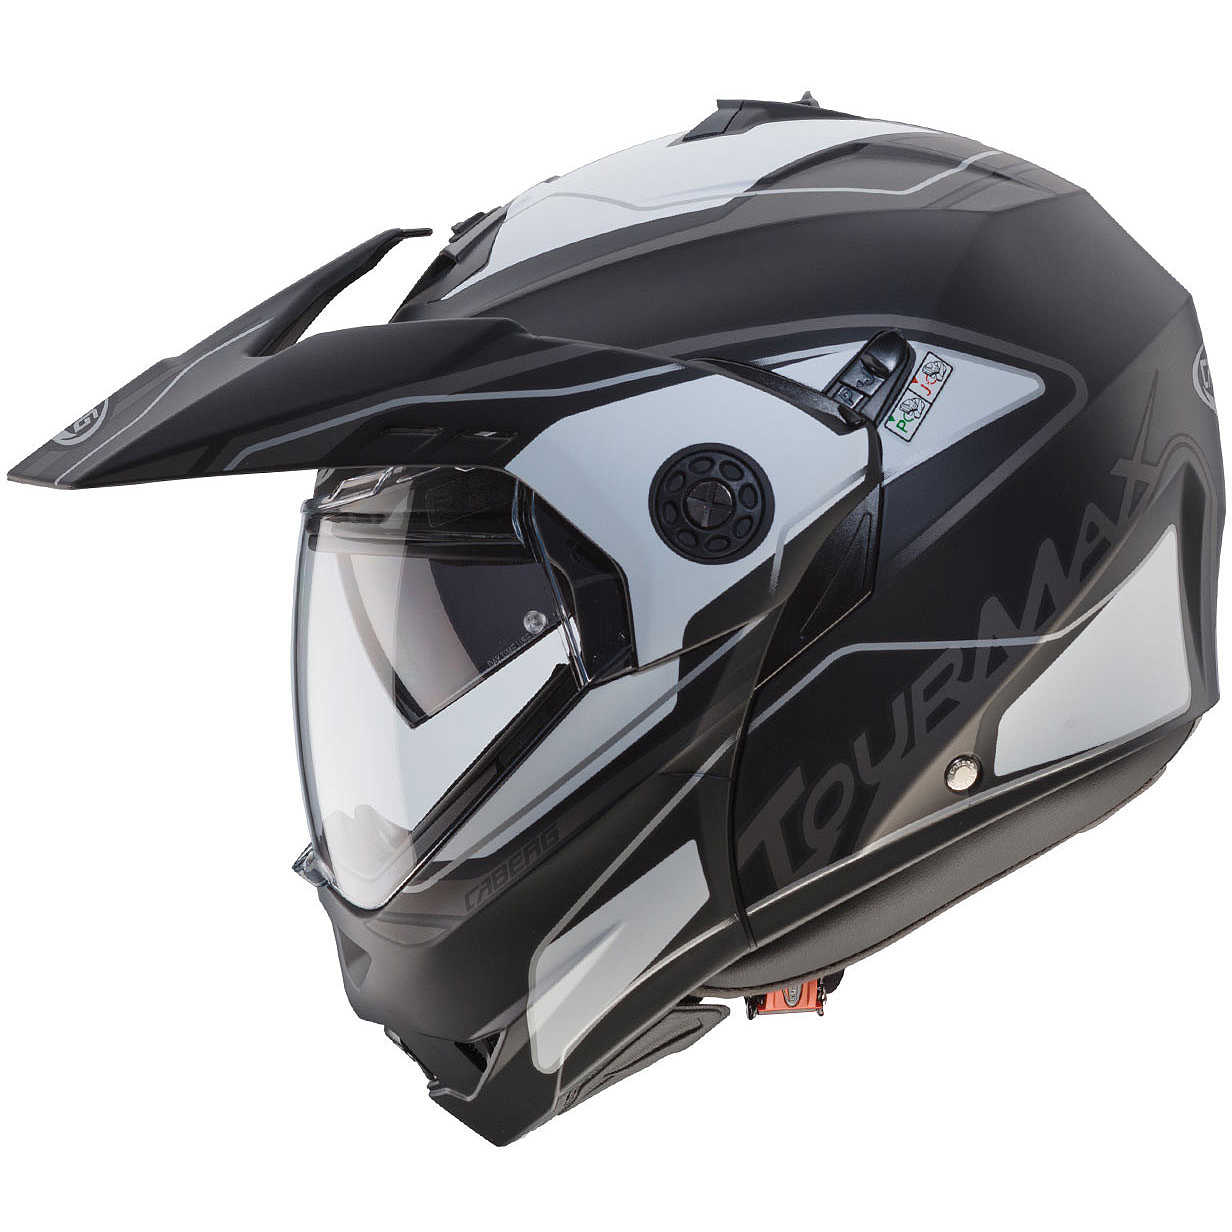 New tourmax marathon matt black white anthracyte helmets for Marathon black max motors